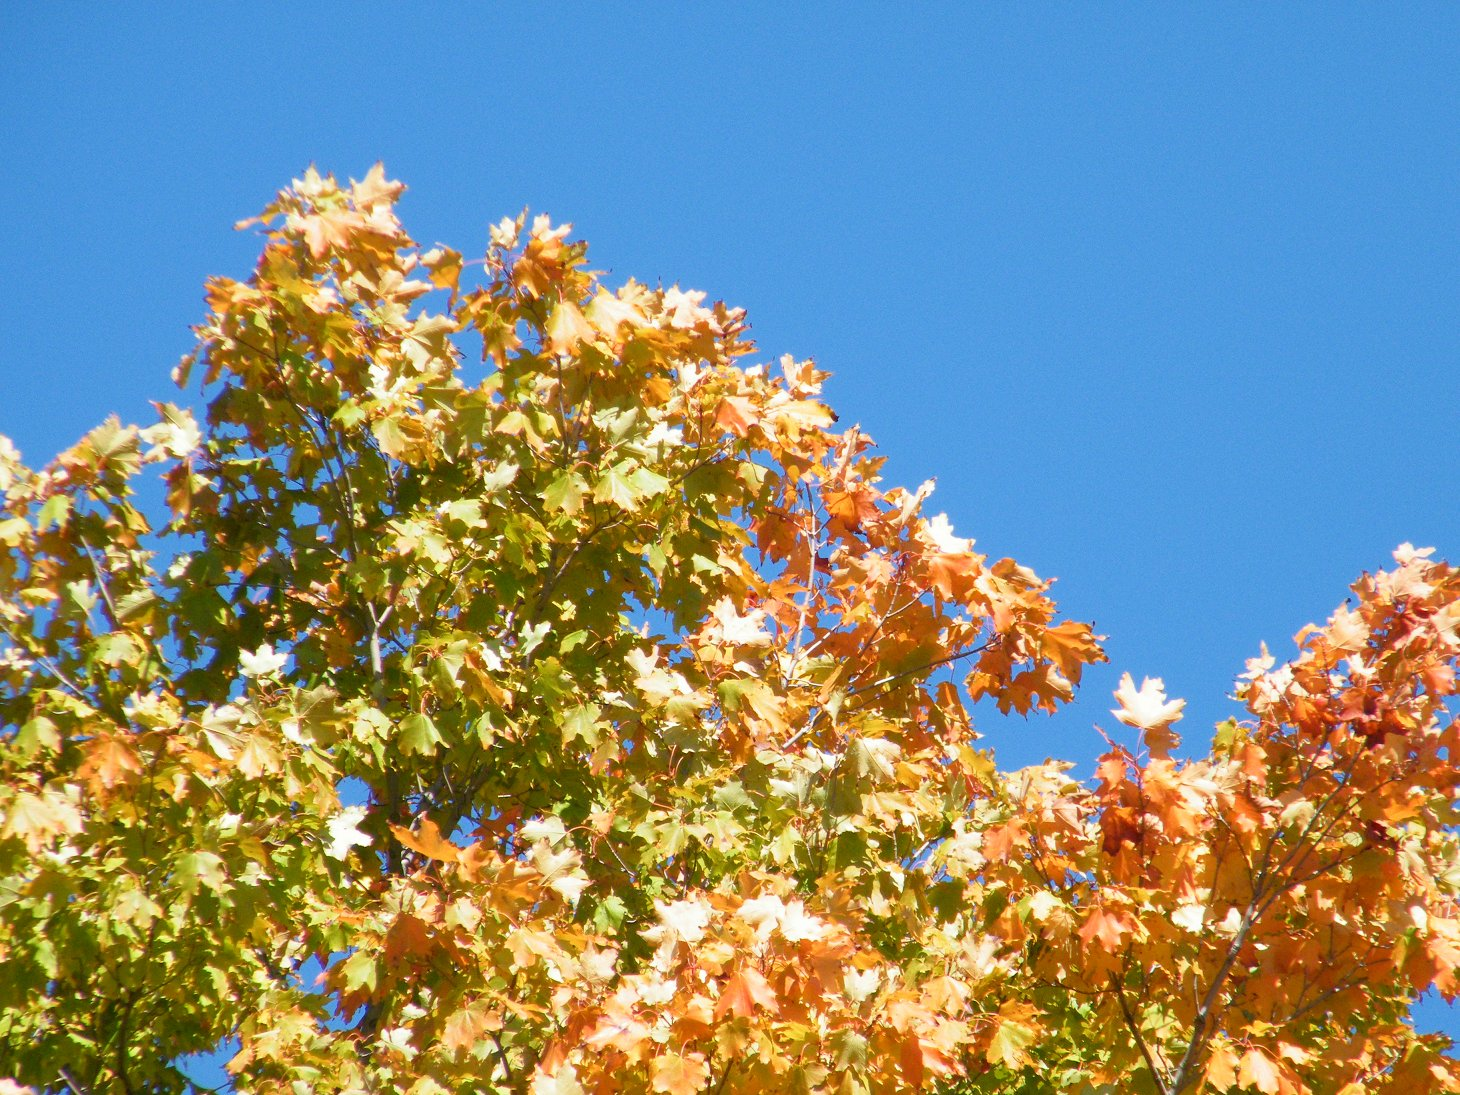 Macro Fall Leaves on a Beautiful Day